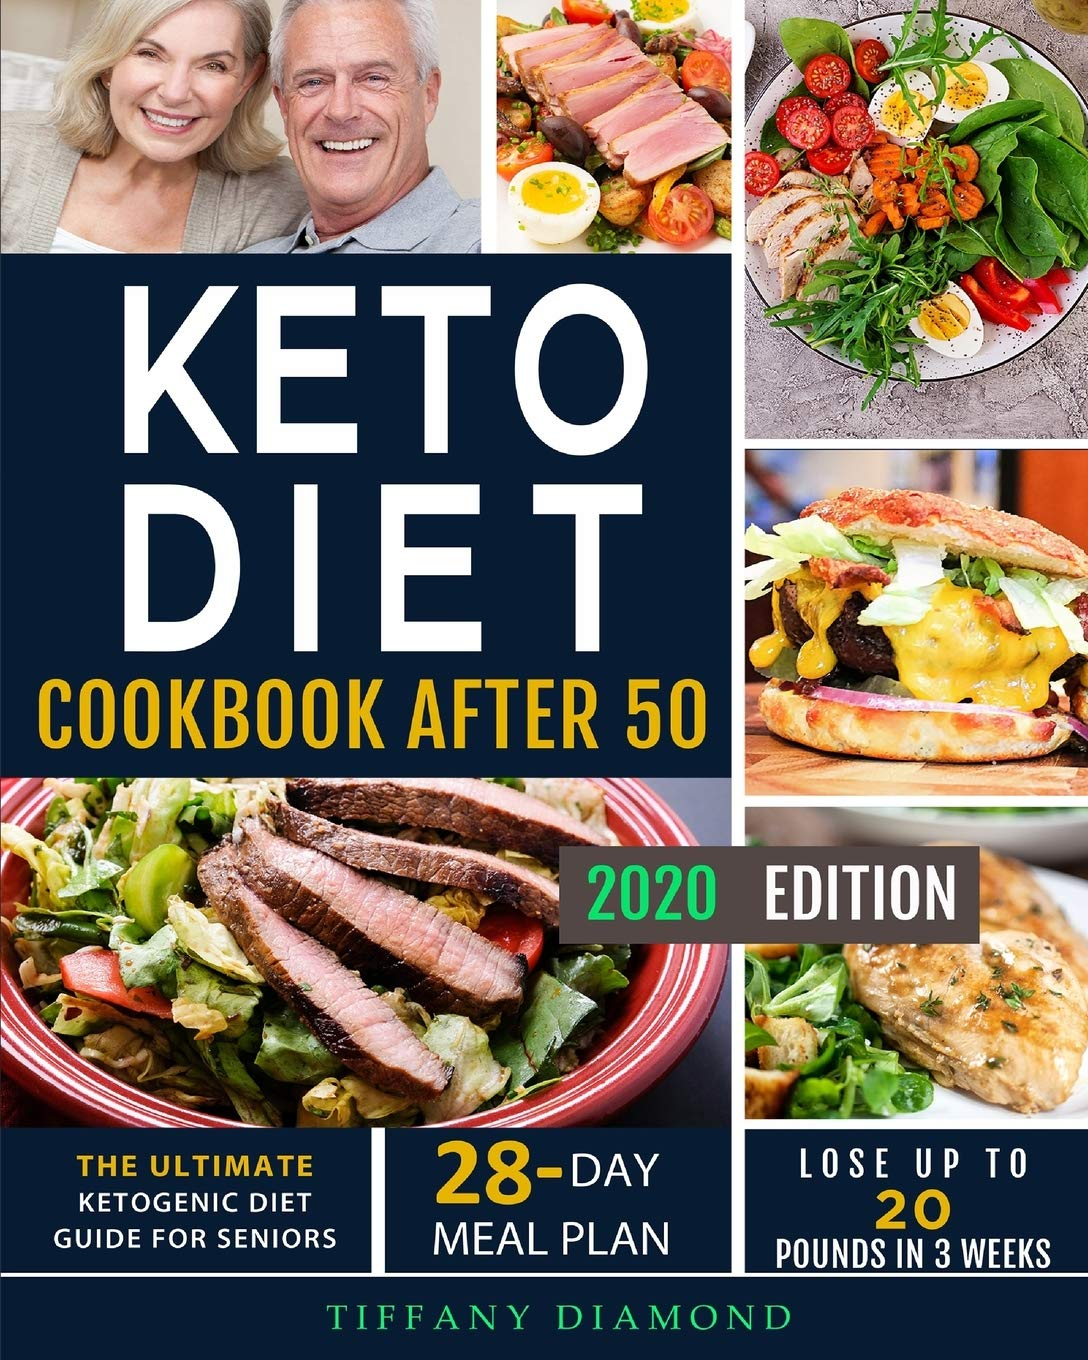 Keto Diet Cookbook After 50